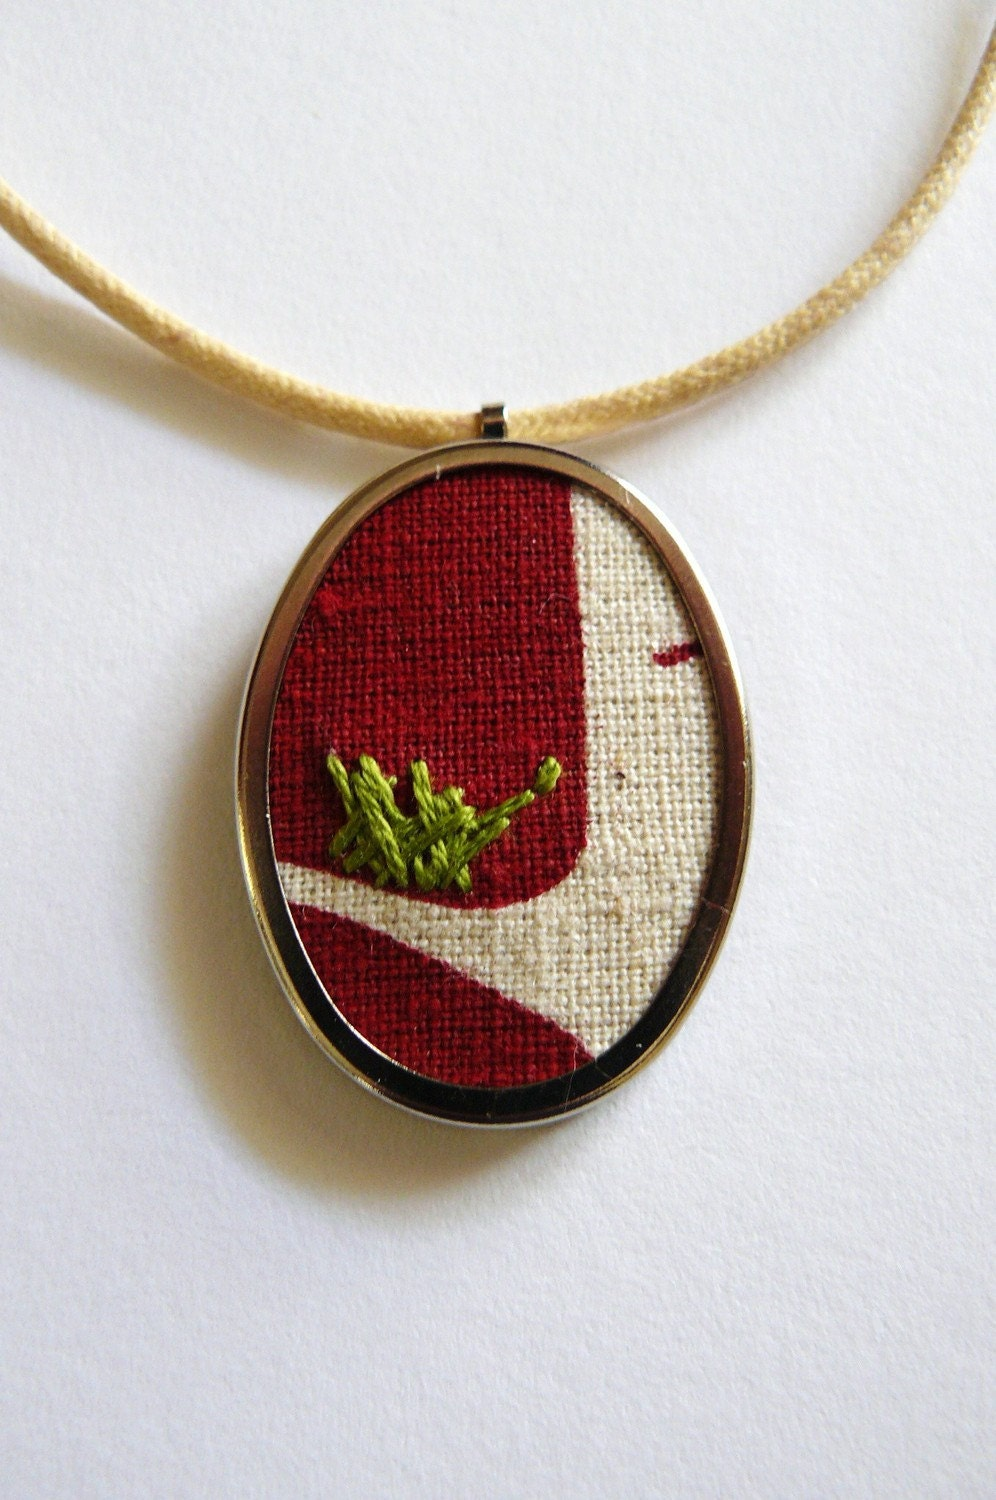 BrisStyle Handmade Ark Flood Appeal - Birds Nest Hand Embroidered Pendant Necklace